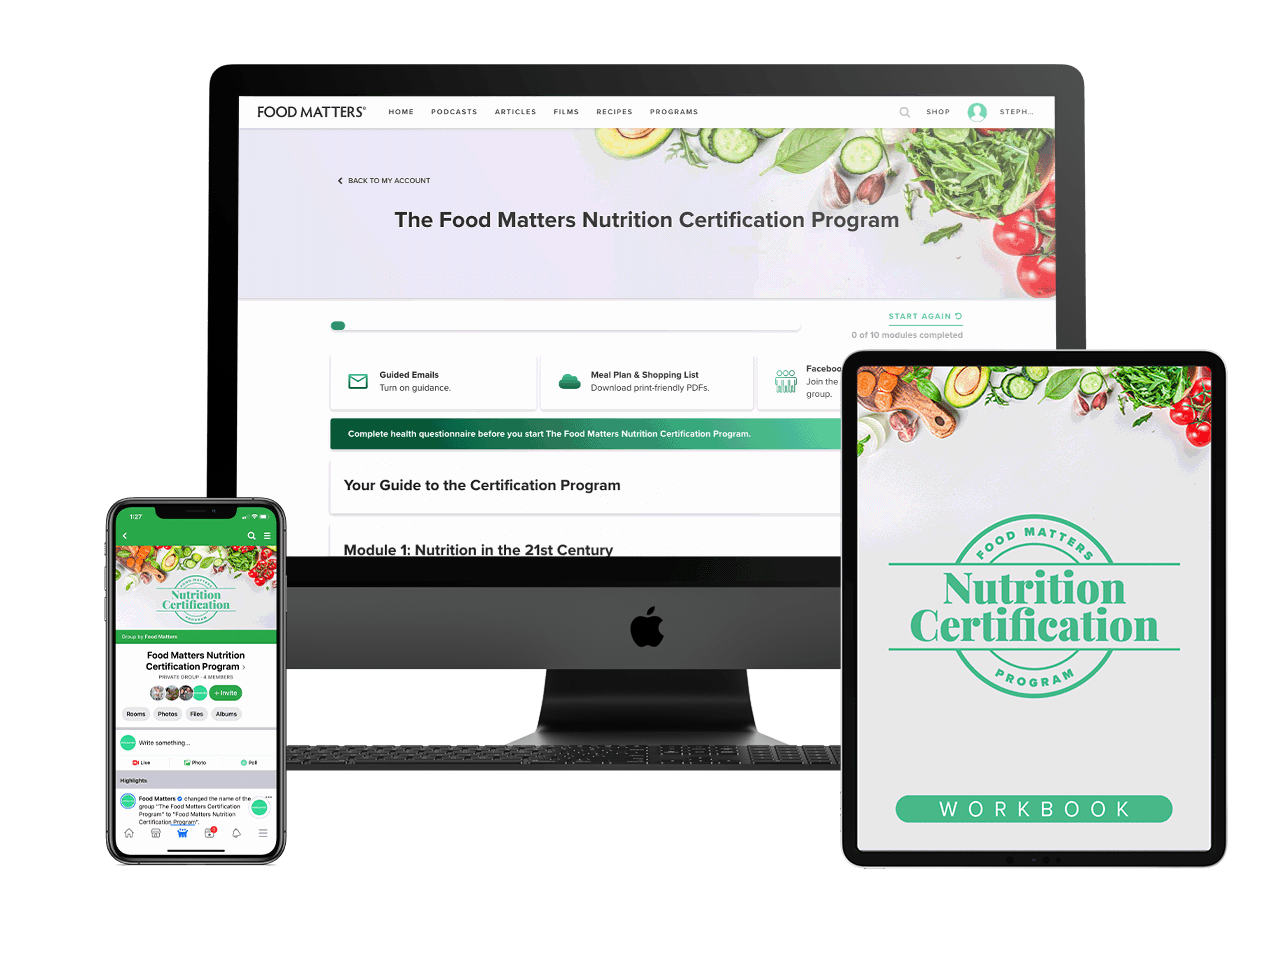 The Food Matters Nutrition Certification Program